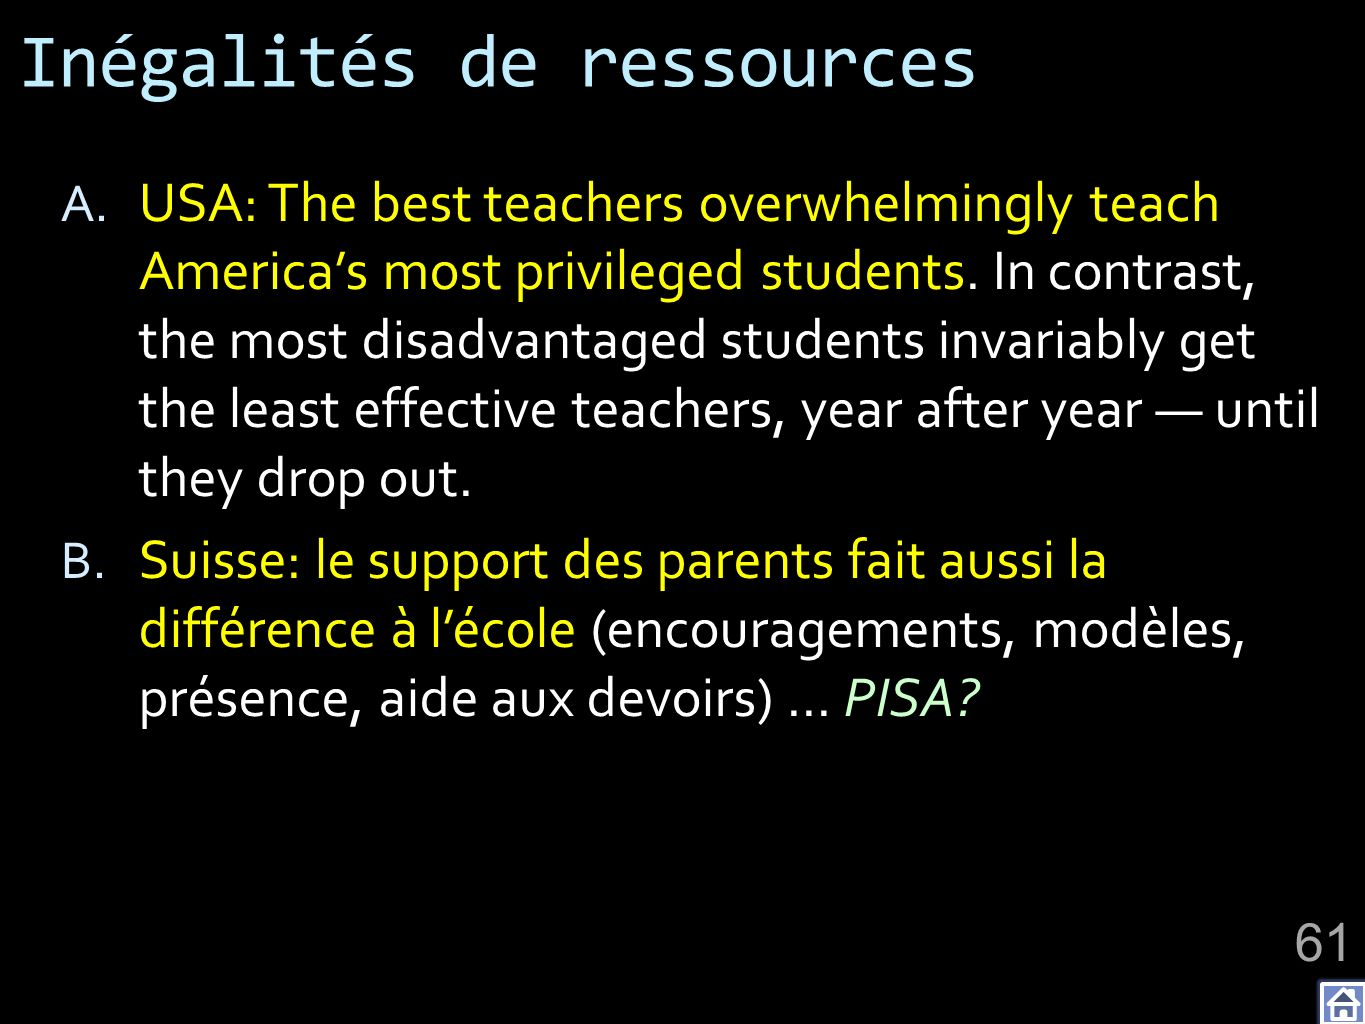 Inégalités de ressources A. USA: The best teachers overwhelmingly teach Americas most privileged students. In contrast, the most disadvantaged student